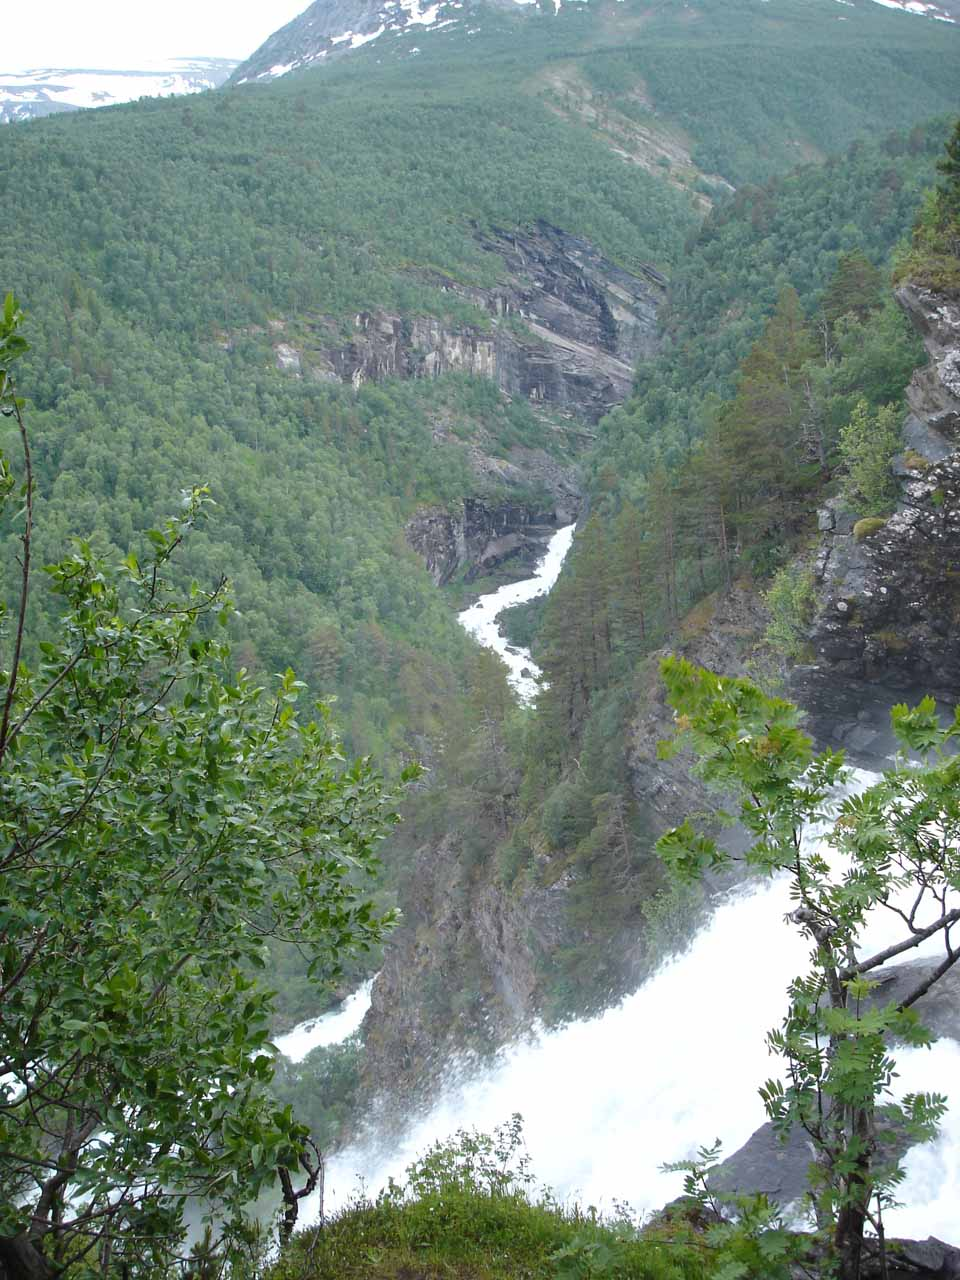 This was the view from the top of Svøufossen as we had mistakenly driven up Snøgtu before realizing our mistake then backtracking on the correct road towards the Jenstad farm